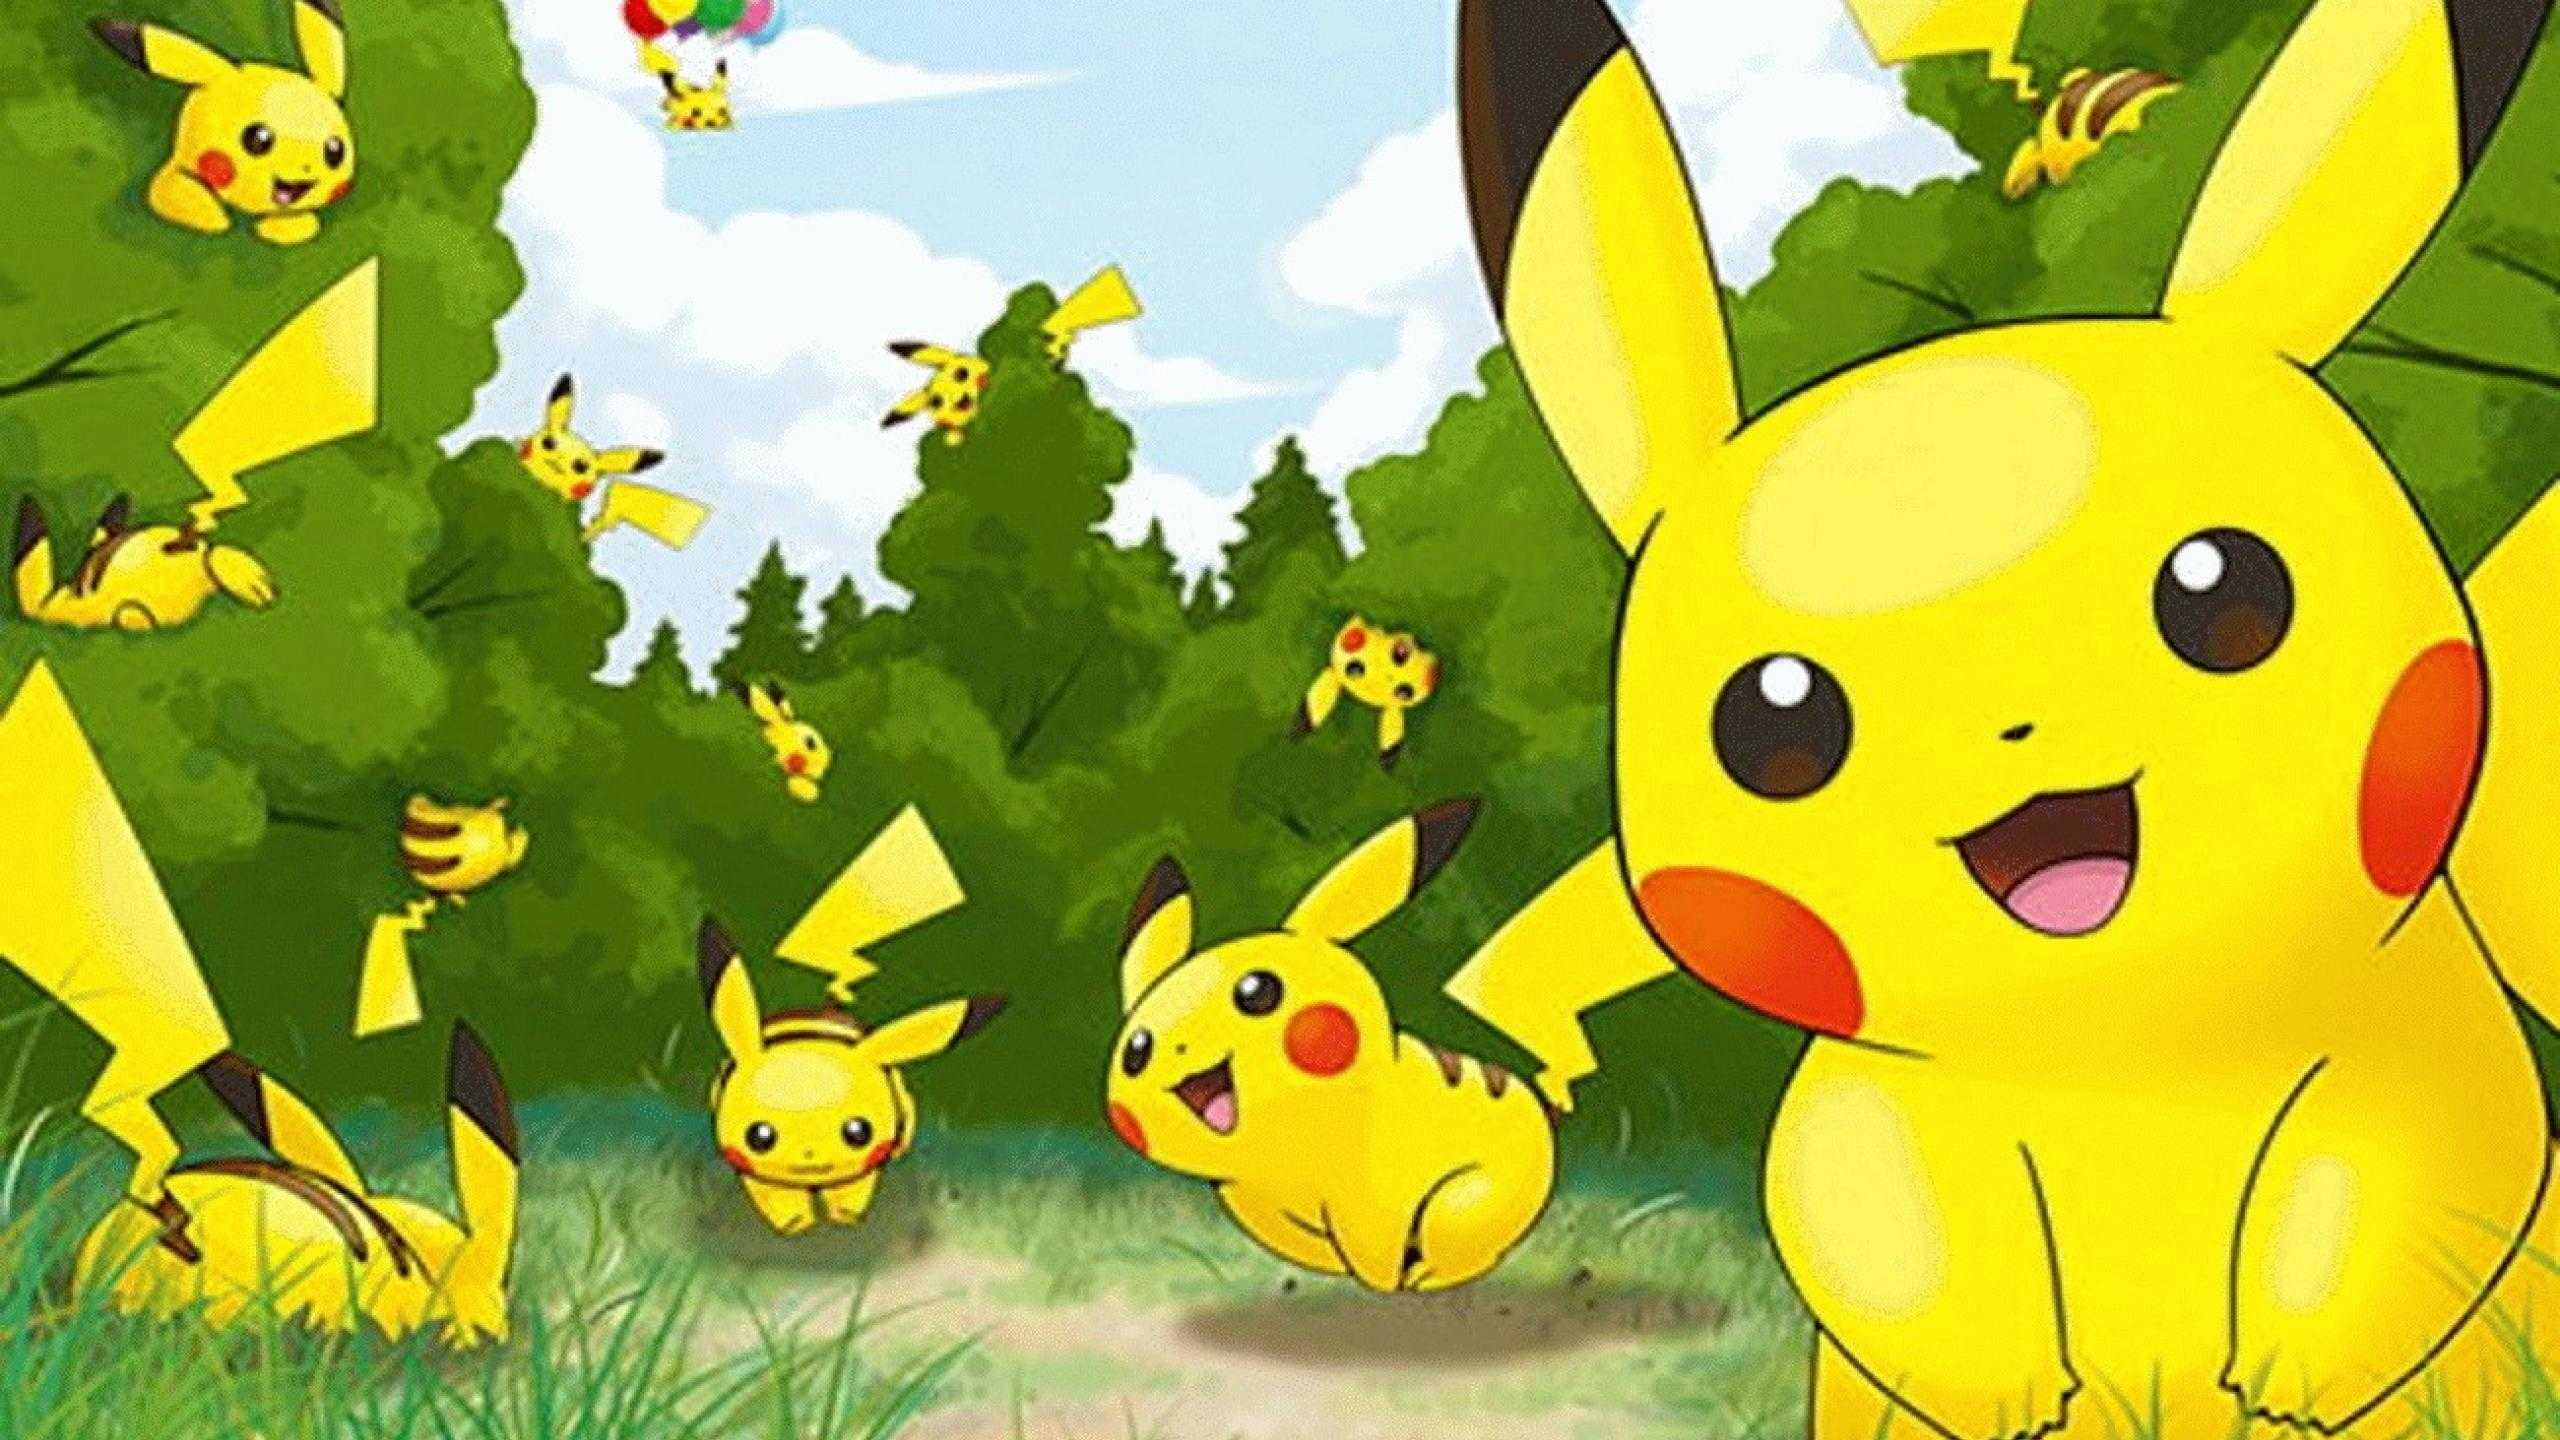 Pokemon Wallpaper Hd Pikachu HD Wallpapers 2560x1440